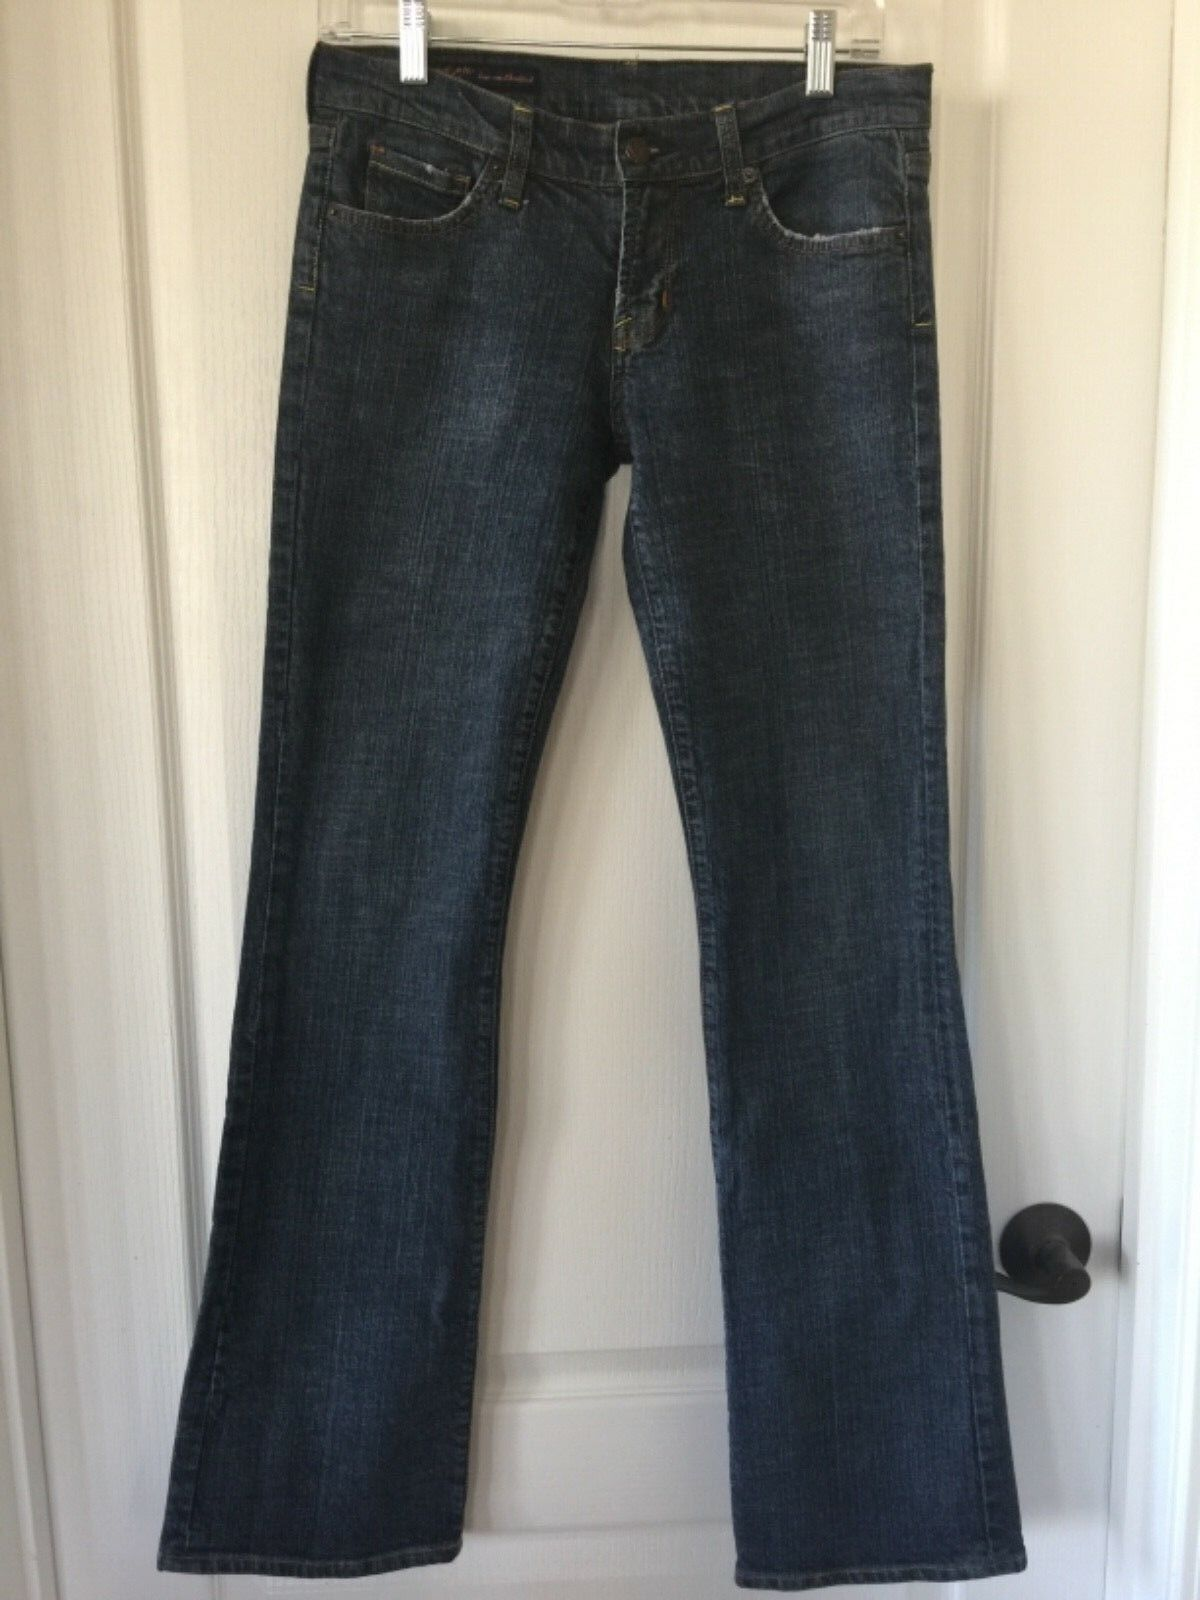 Citzens of Humanity Women's Size 26 Kelly Stretch Low Waist Boot Cut